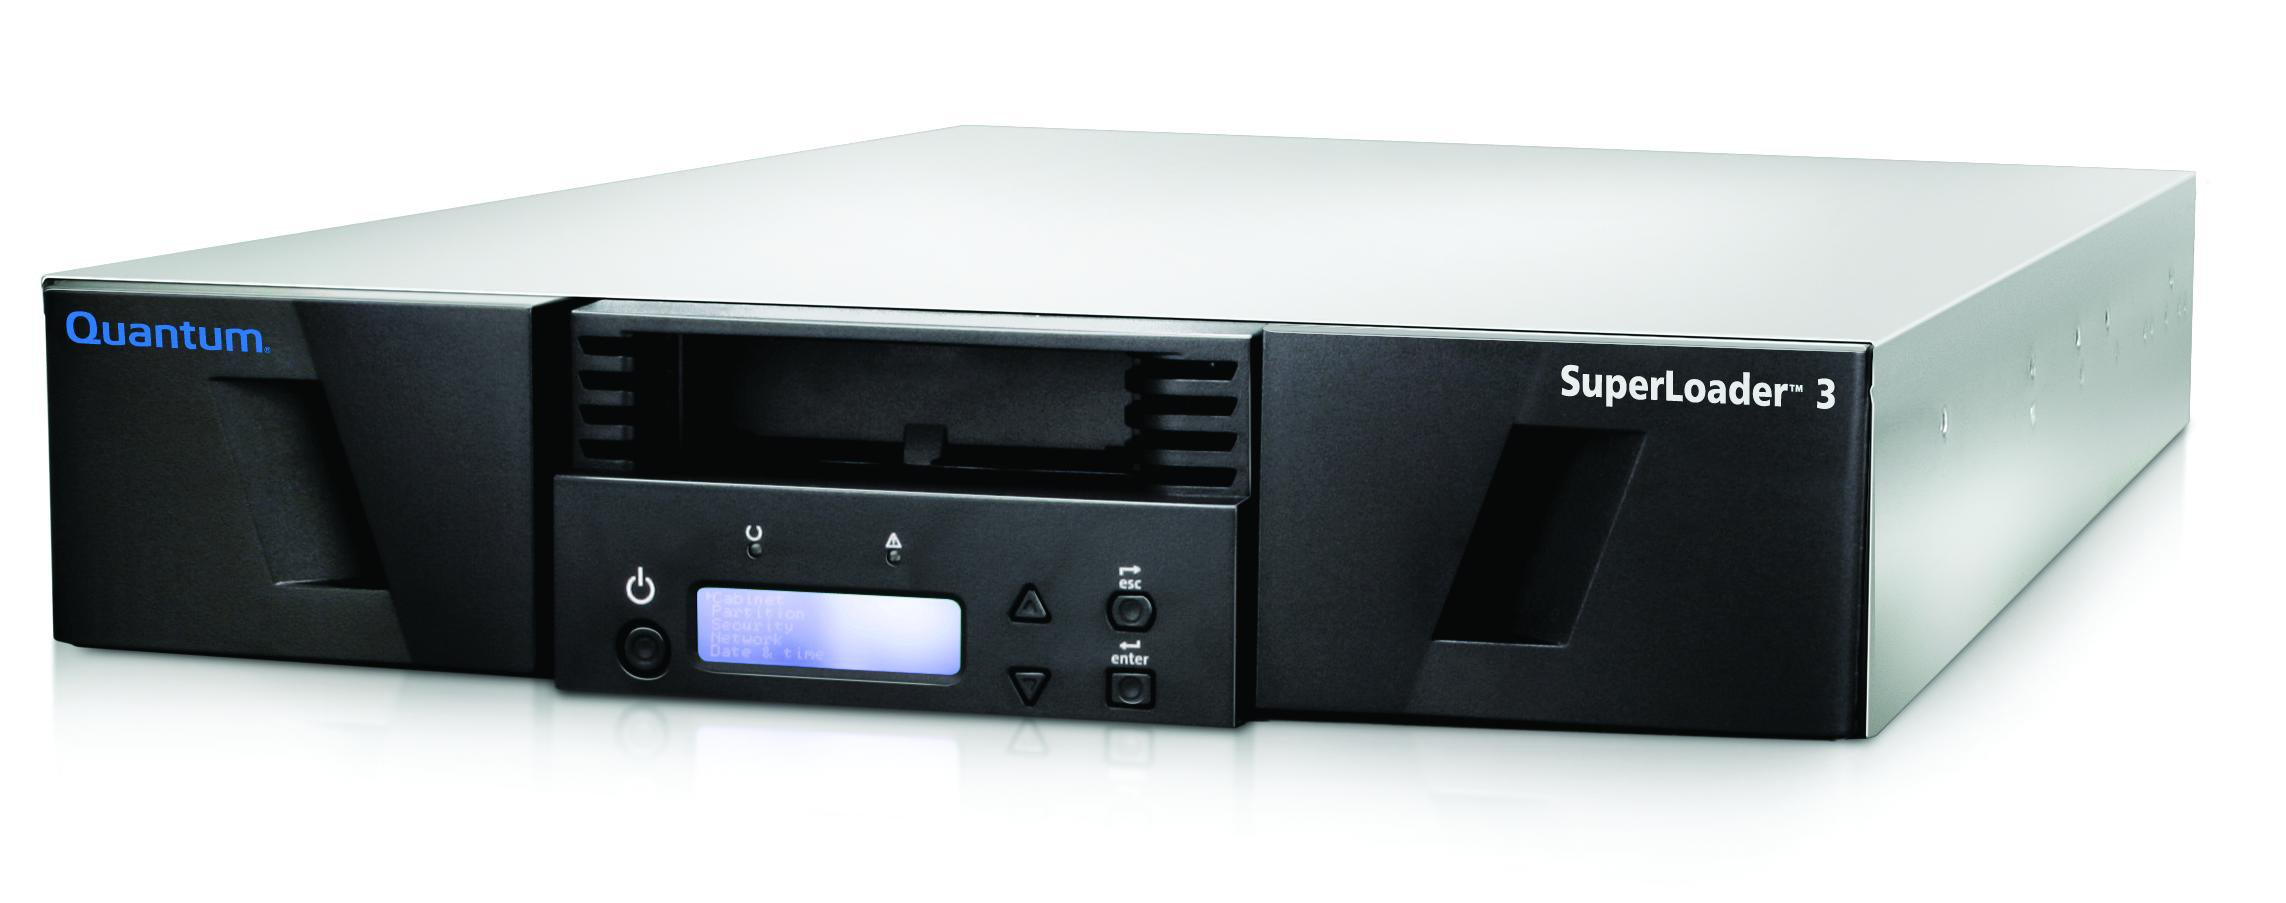 QUANTUM SUPERLOADER 3, ONE LTO-7HH TAPE DRIVE, MODEL C, 16 SLOTS, 6GB/S SAS, RAC by Quantum